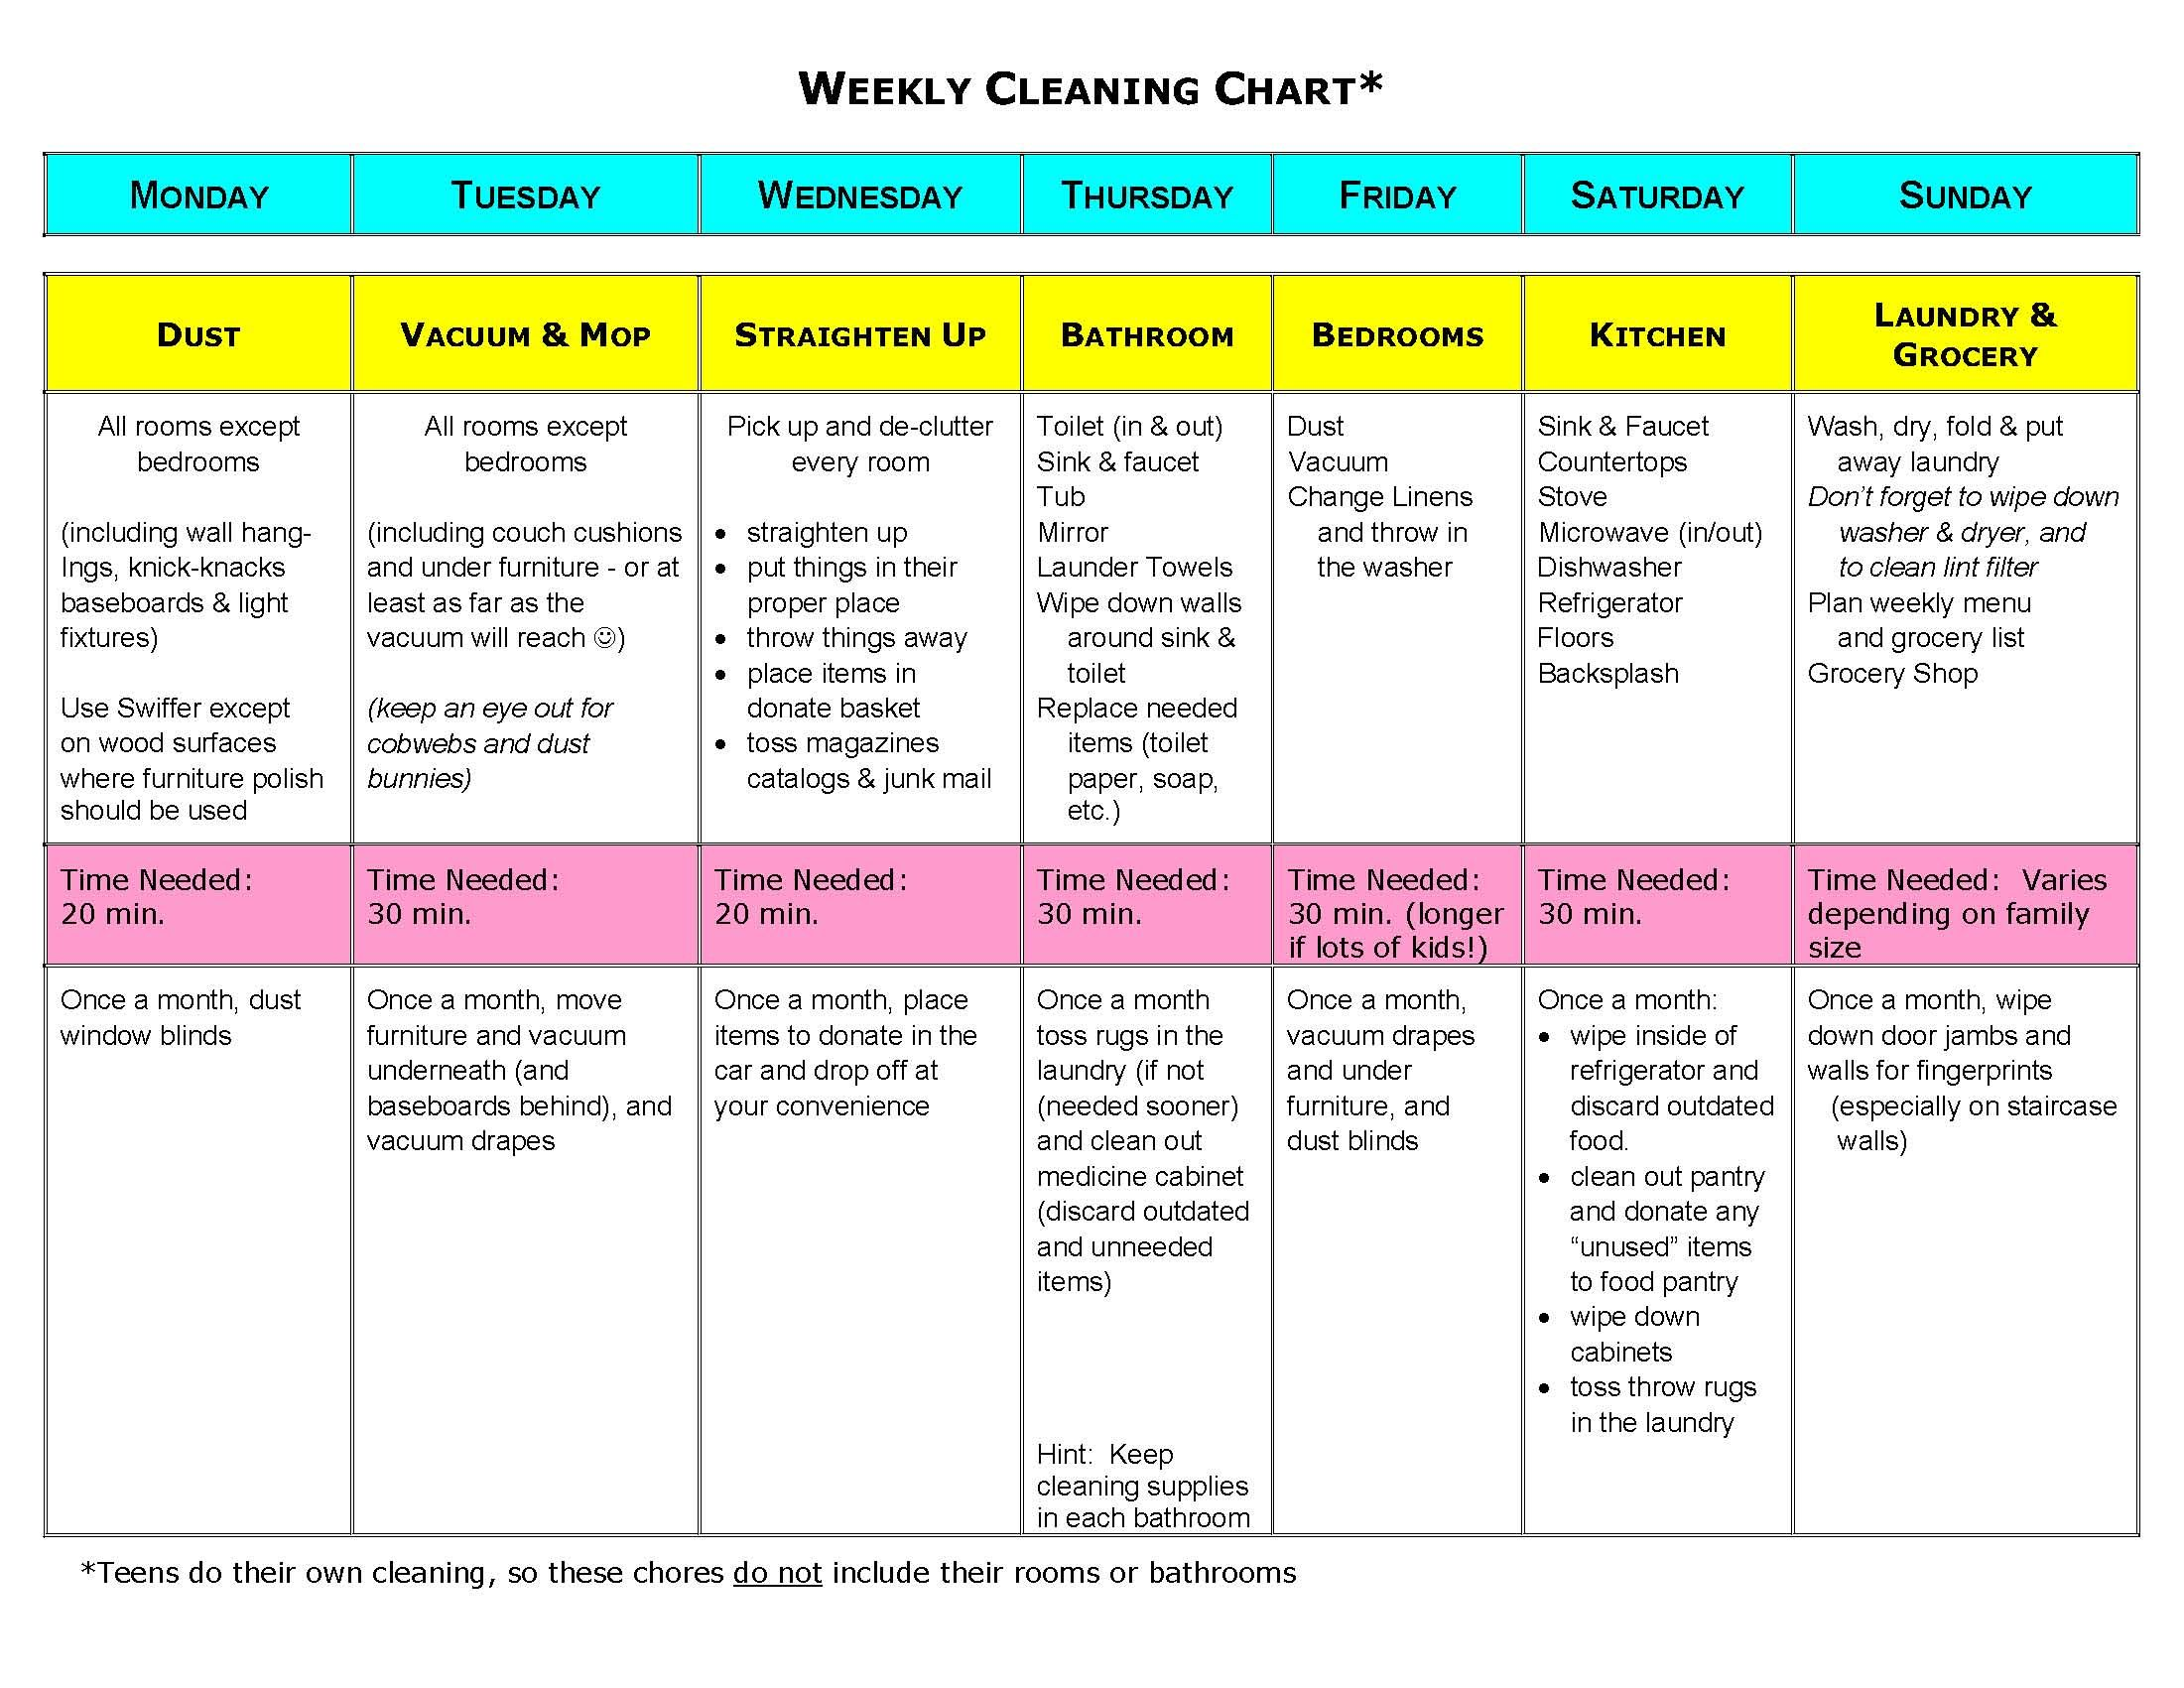 This is my weekly cleaning chart that I thought I'd share